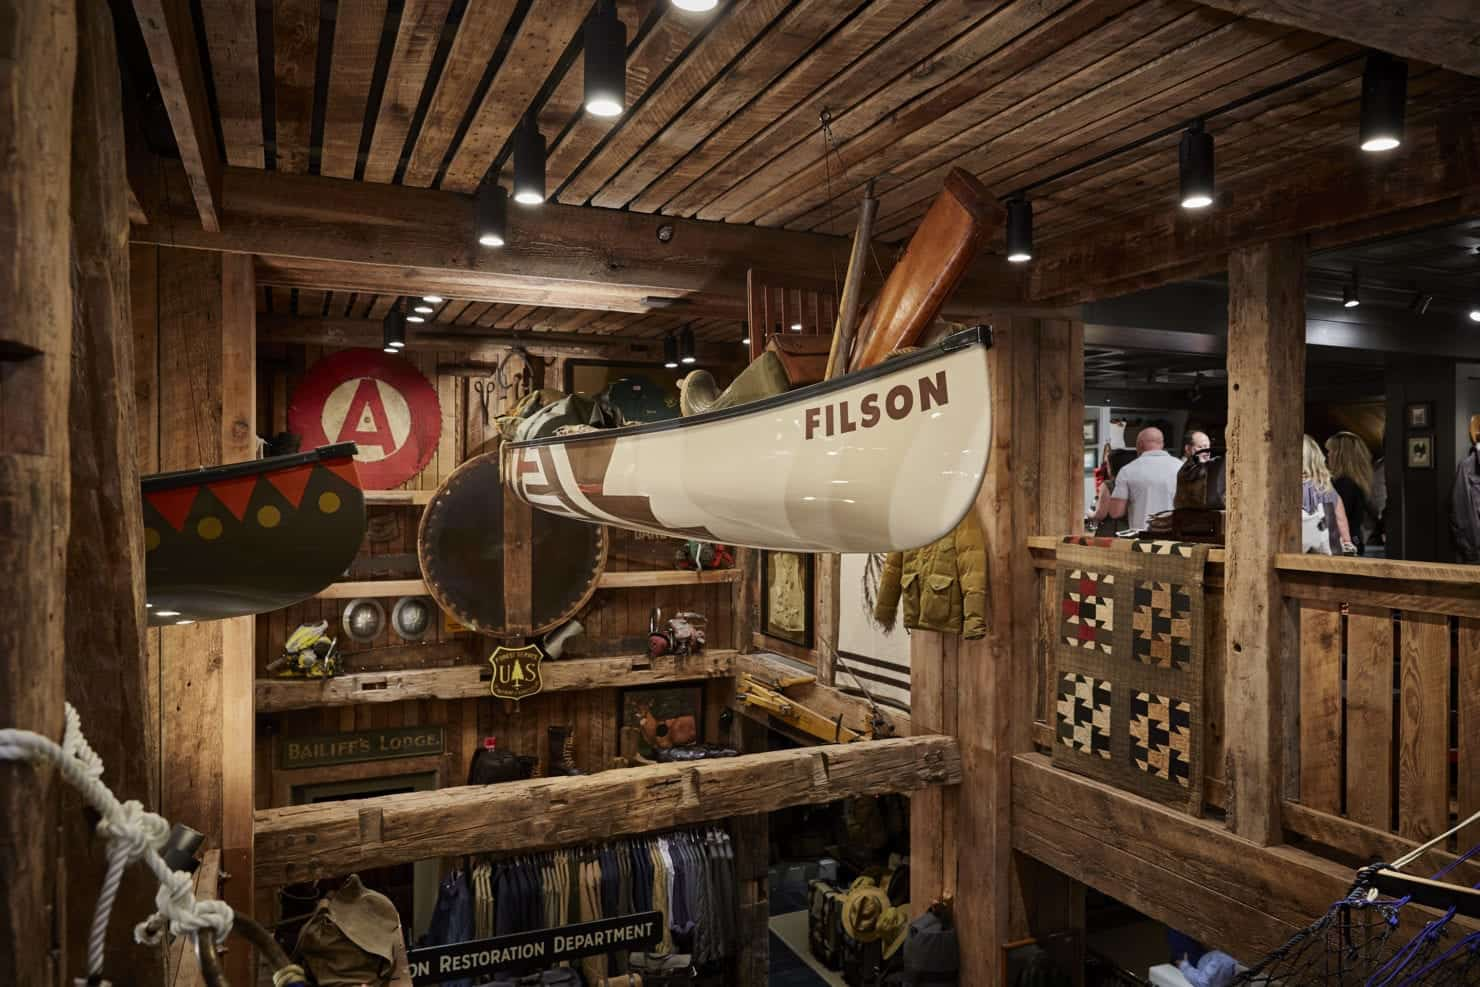 Filson - From Barn to Flagship